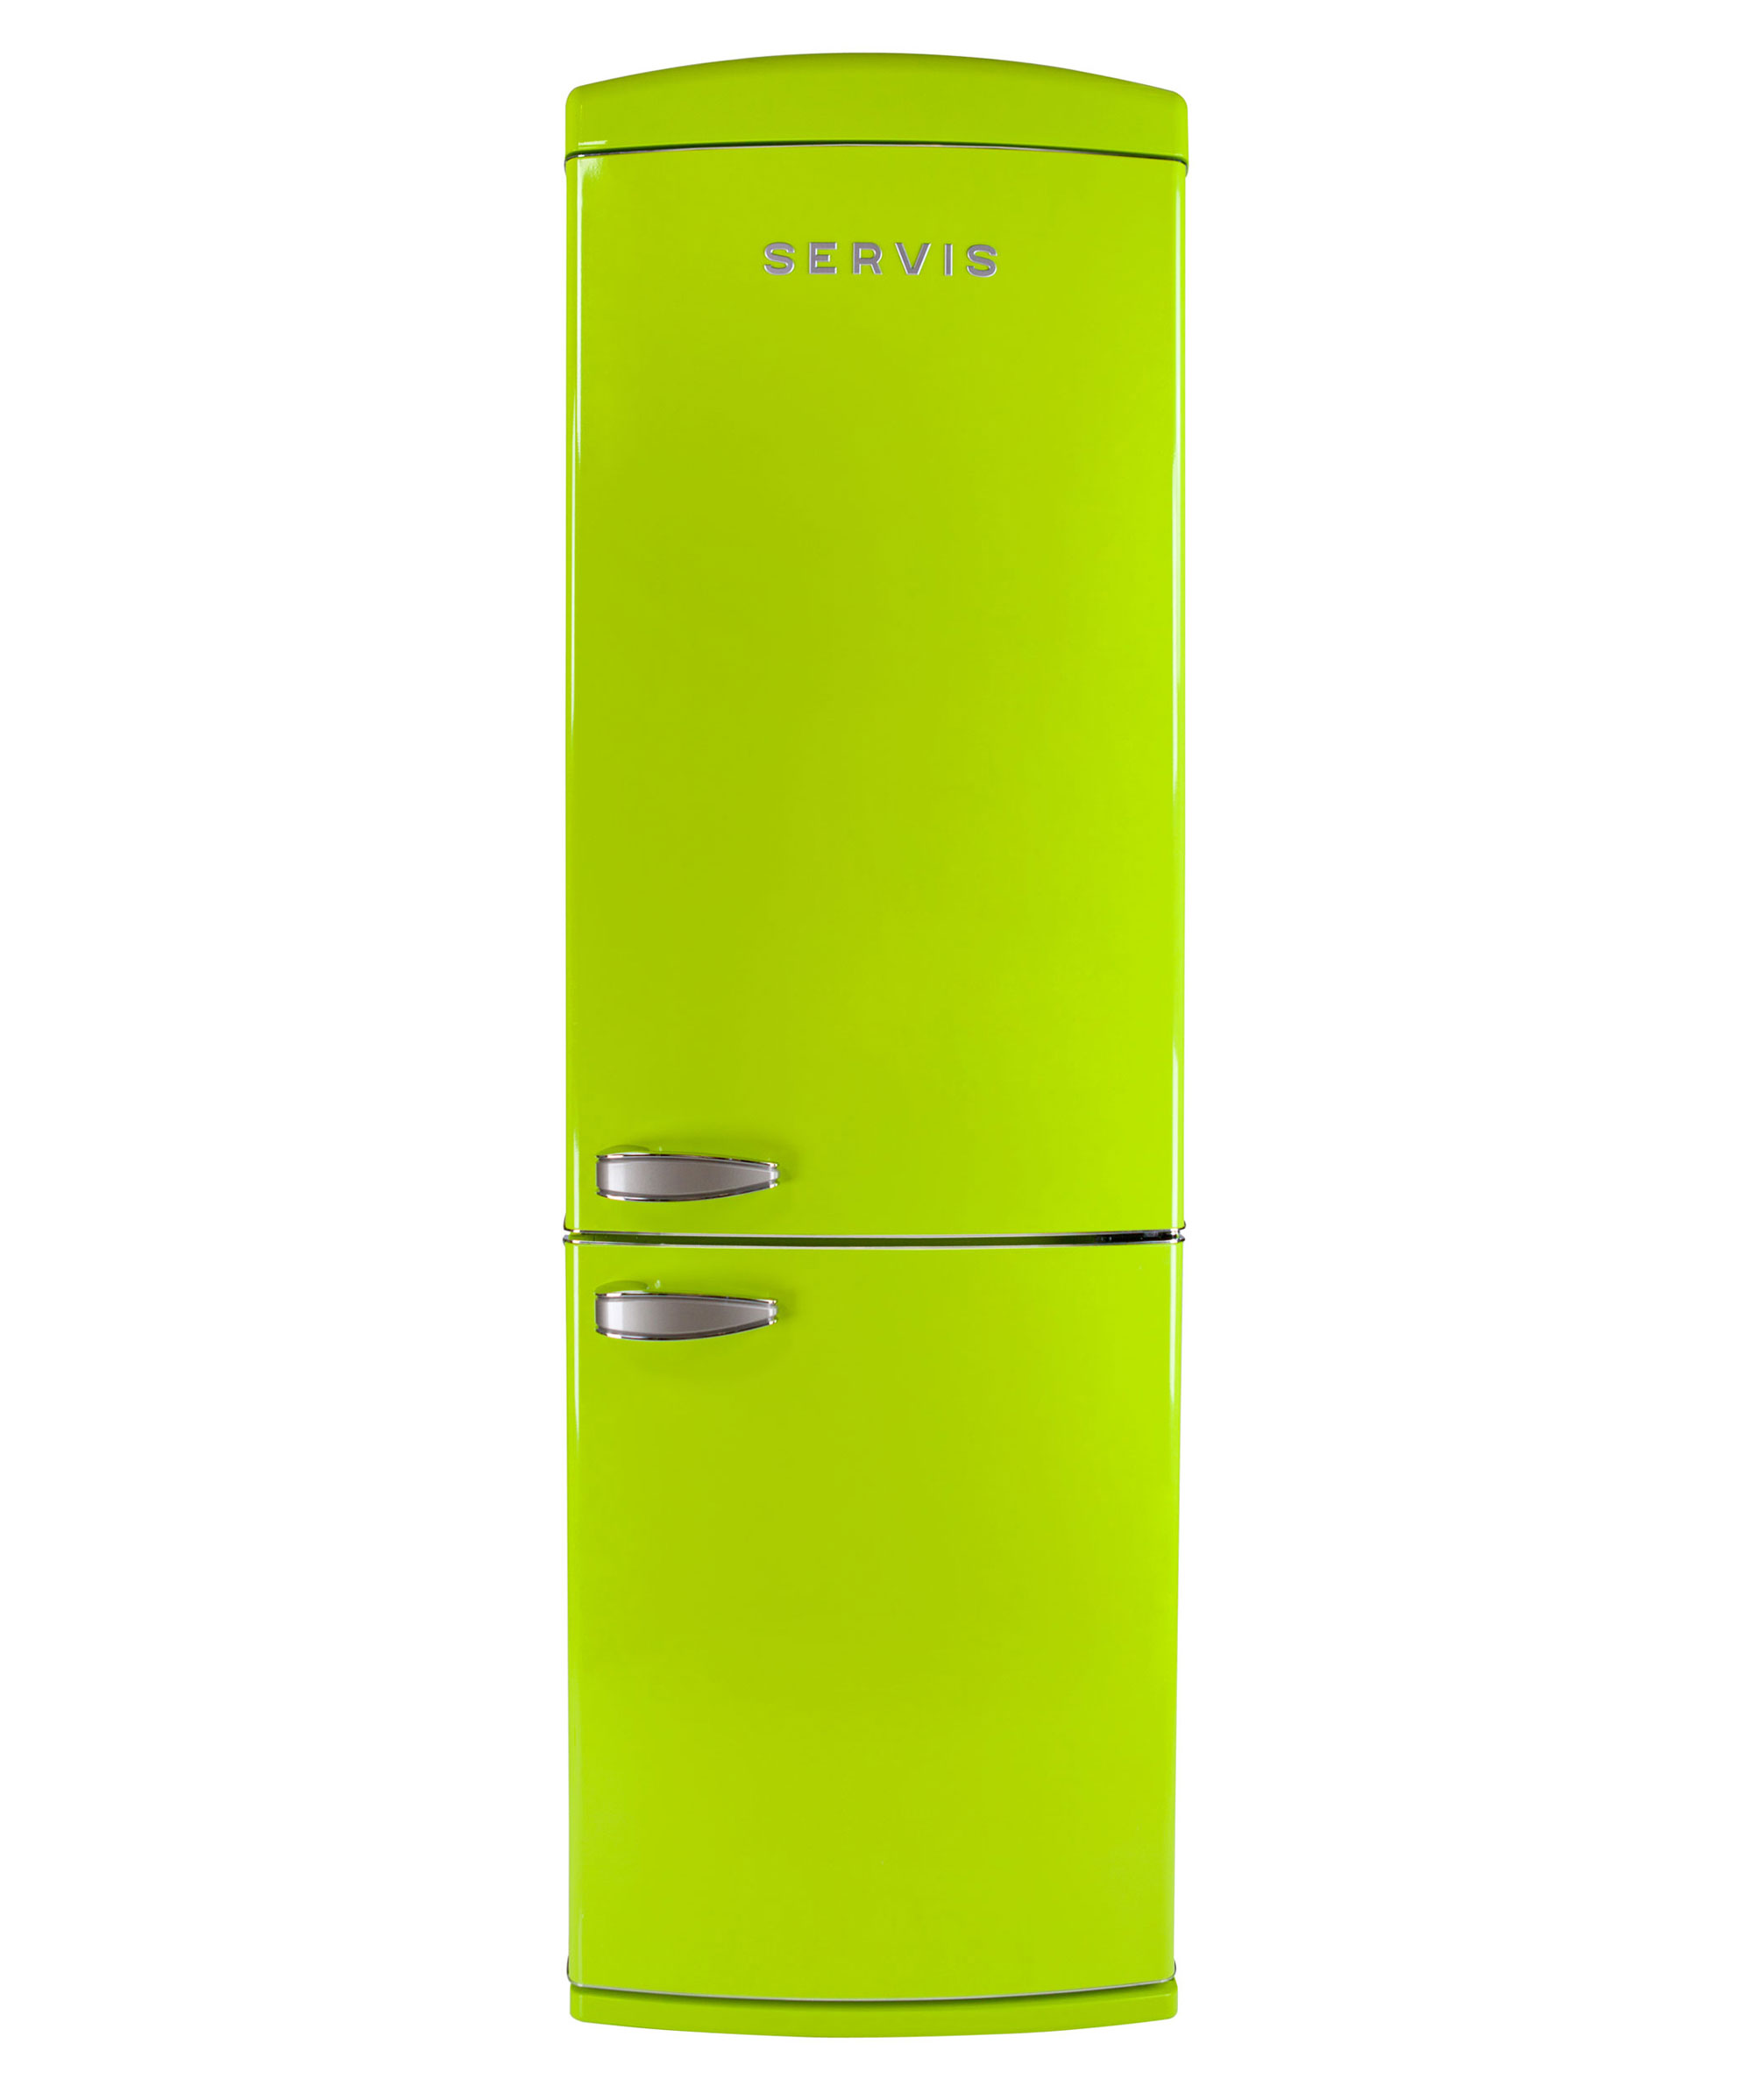 Coloured freezers